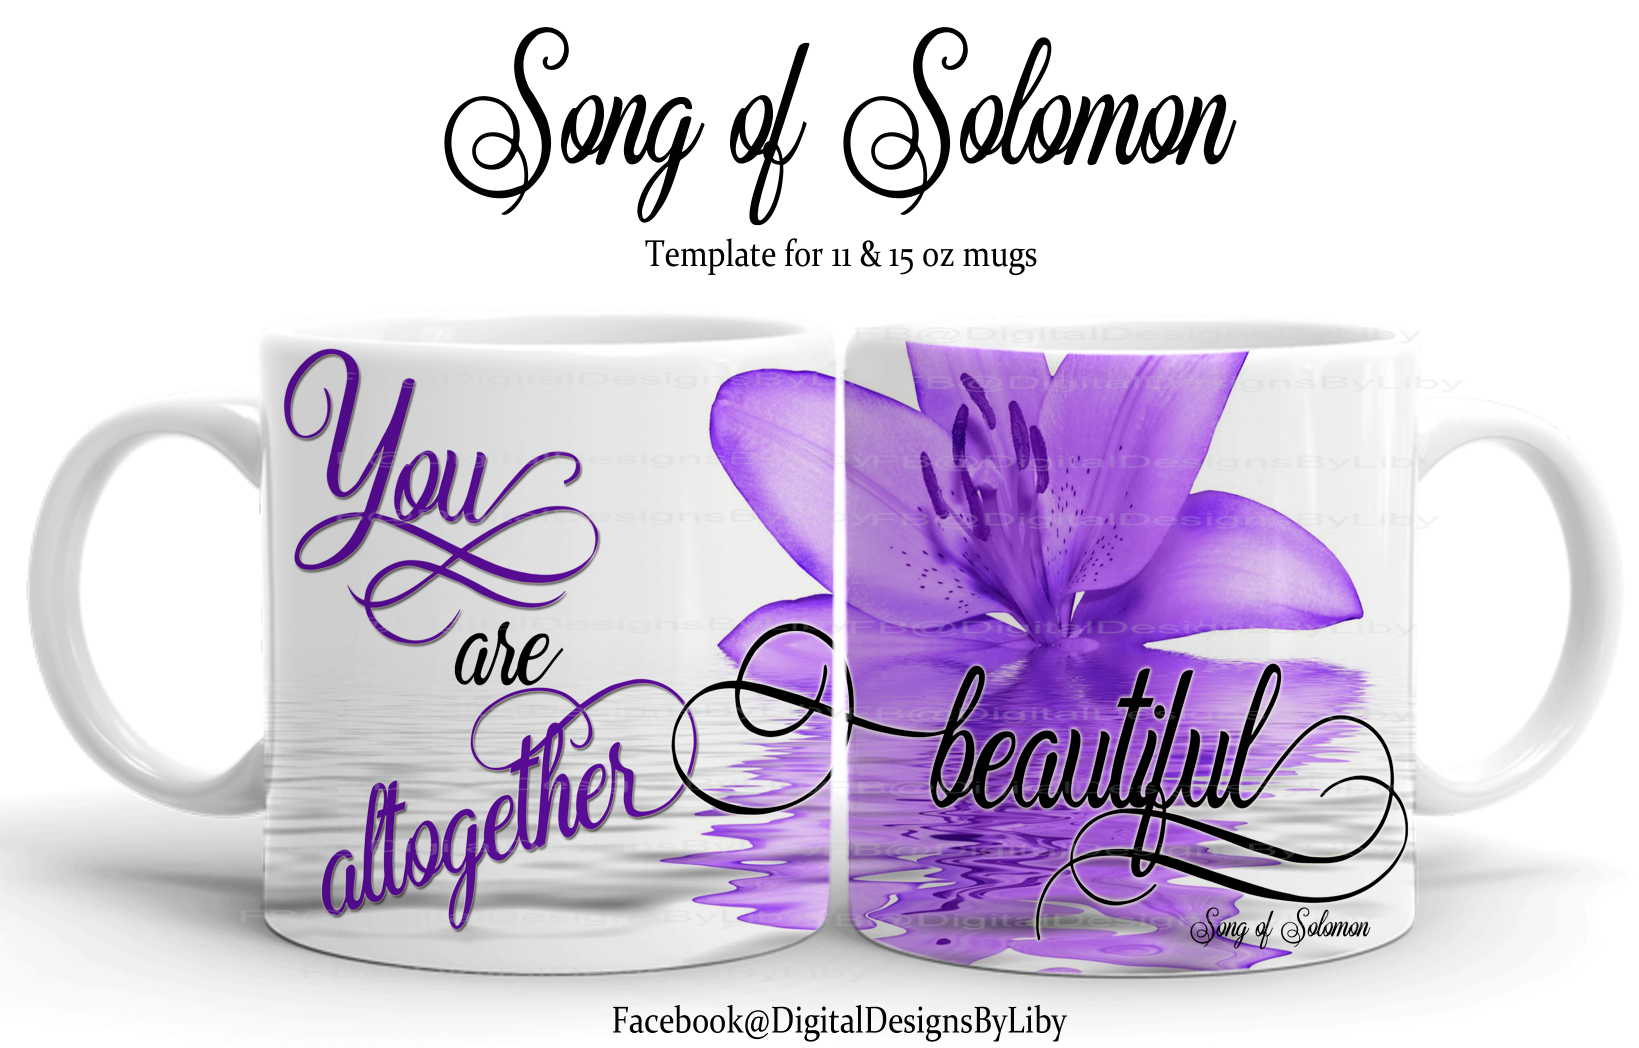 Song of Solomon Mug Template